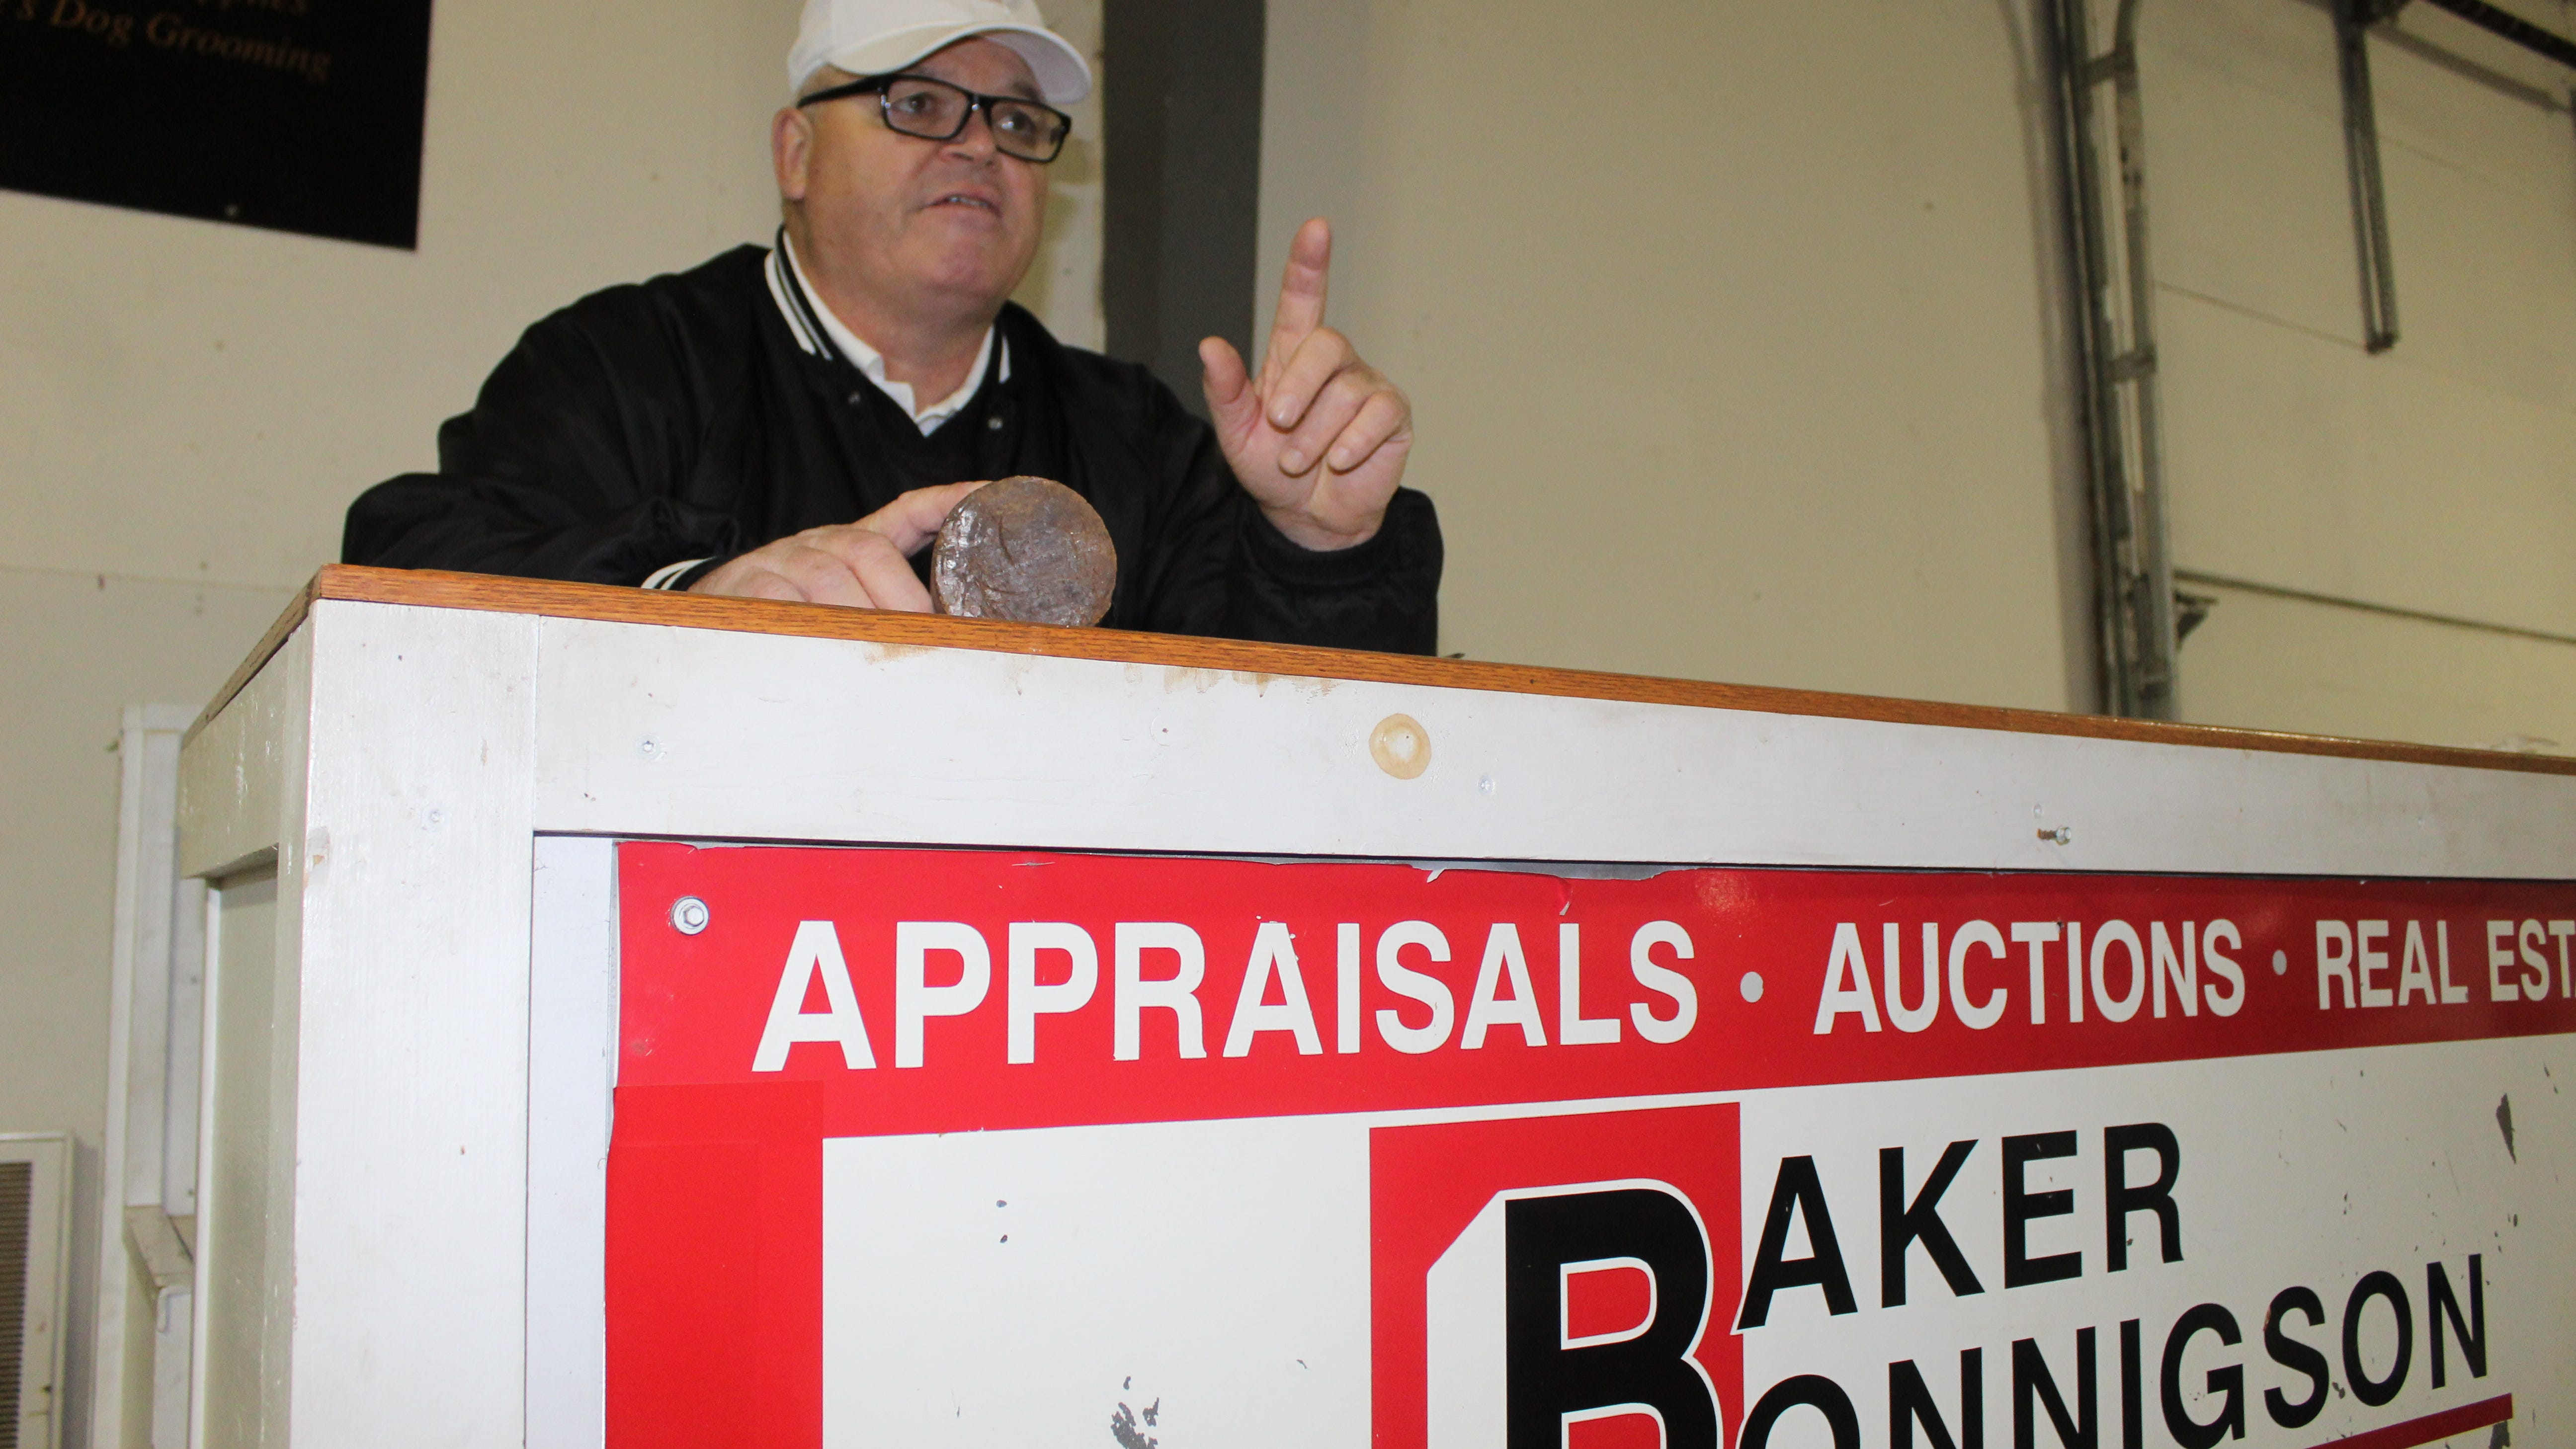 Local auctioneer Baker retiring after 42 years